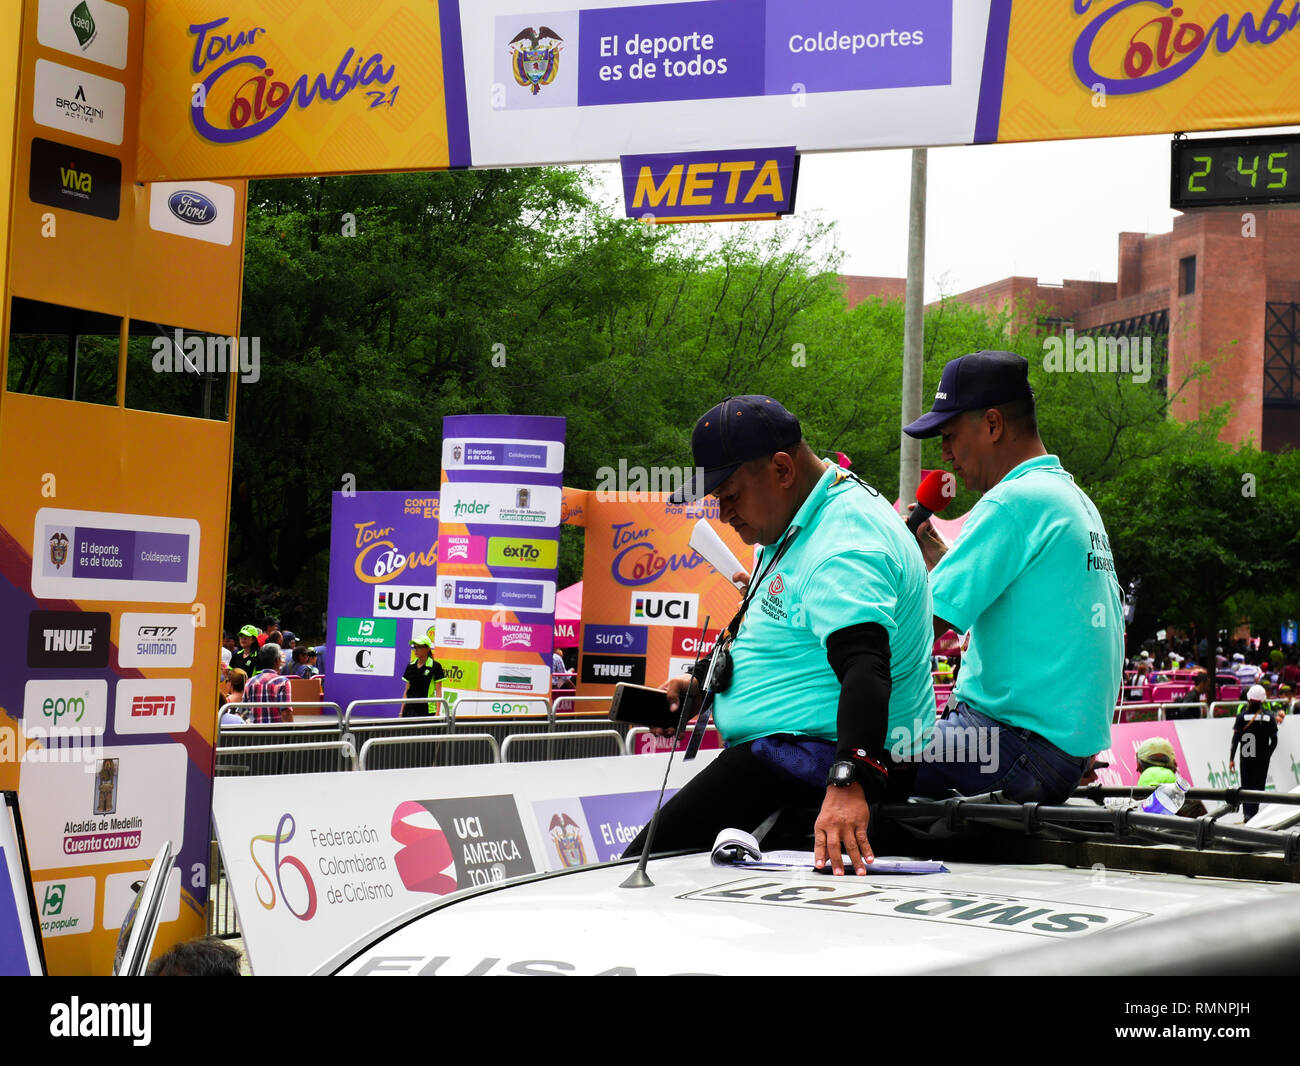 Two radio narrators on the roof of a car relating the happenings of the first stage of the cycling race tour Colombia 2019 in the city of Medellin - Stock Image